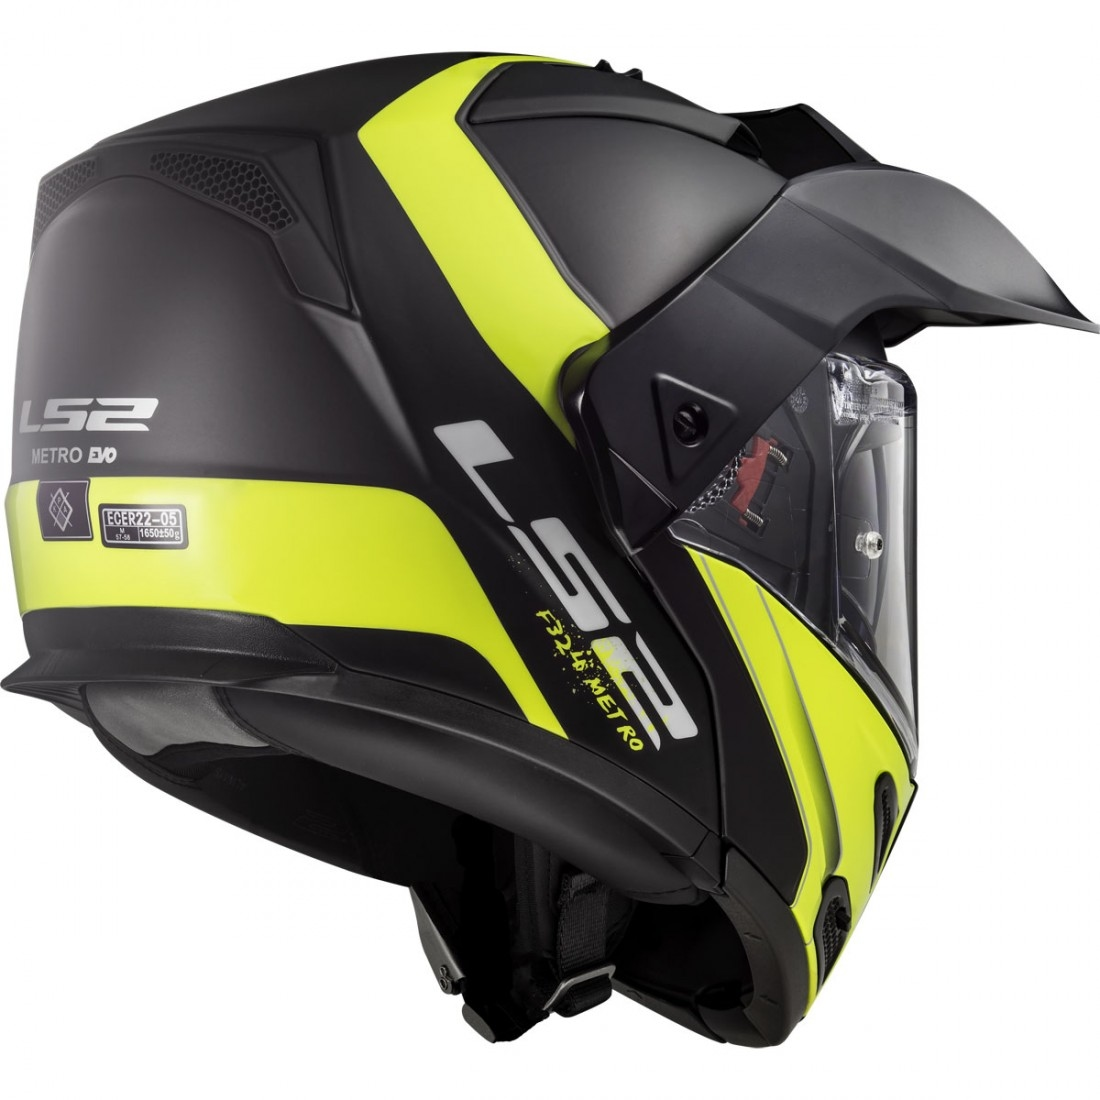 Helmet LS2 324 METRO (RAPID Matt Black H-V Yellow)